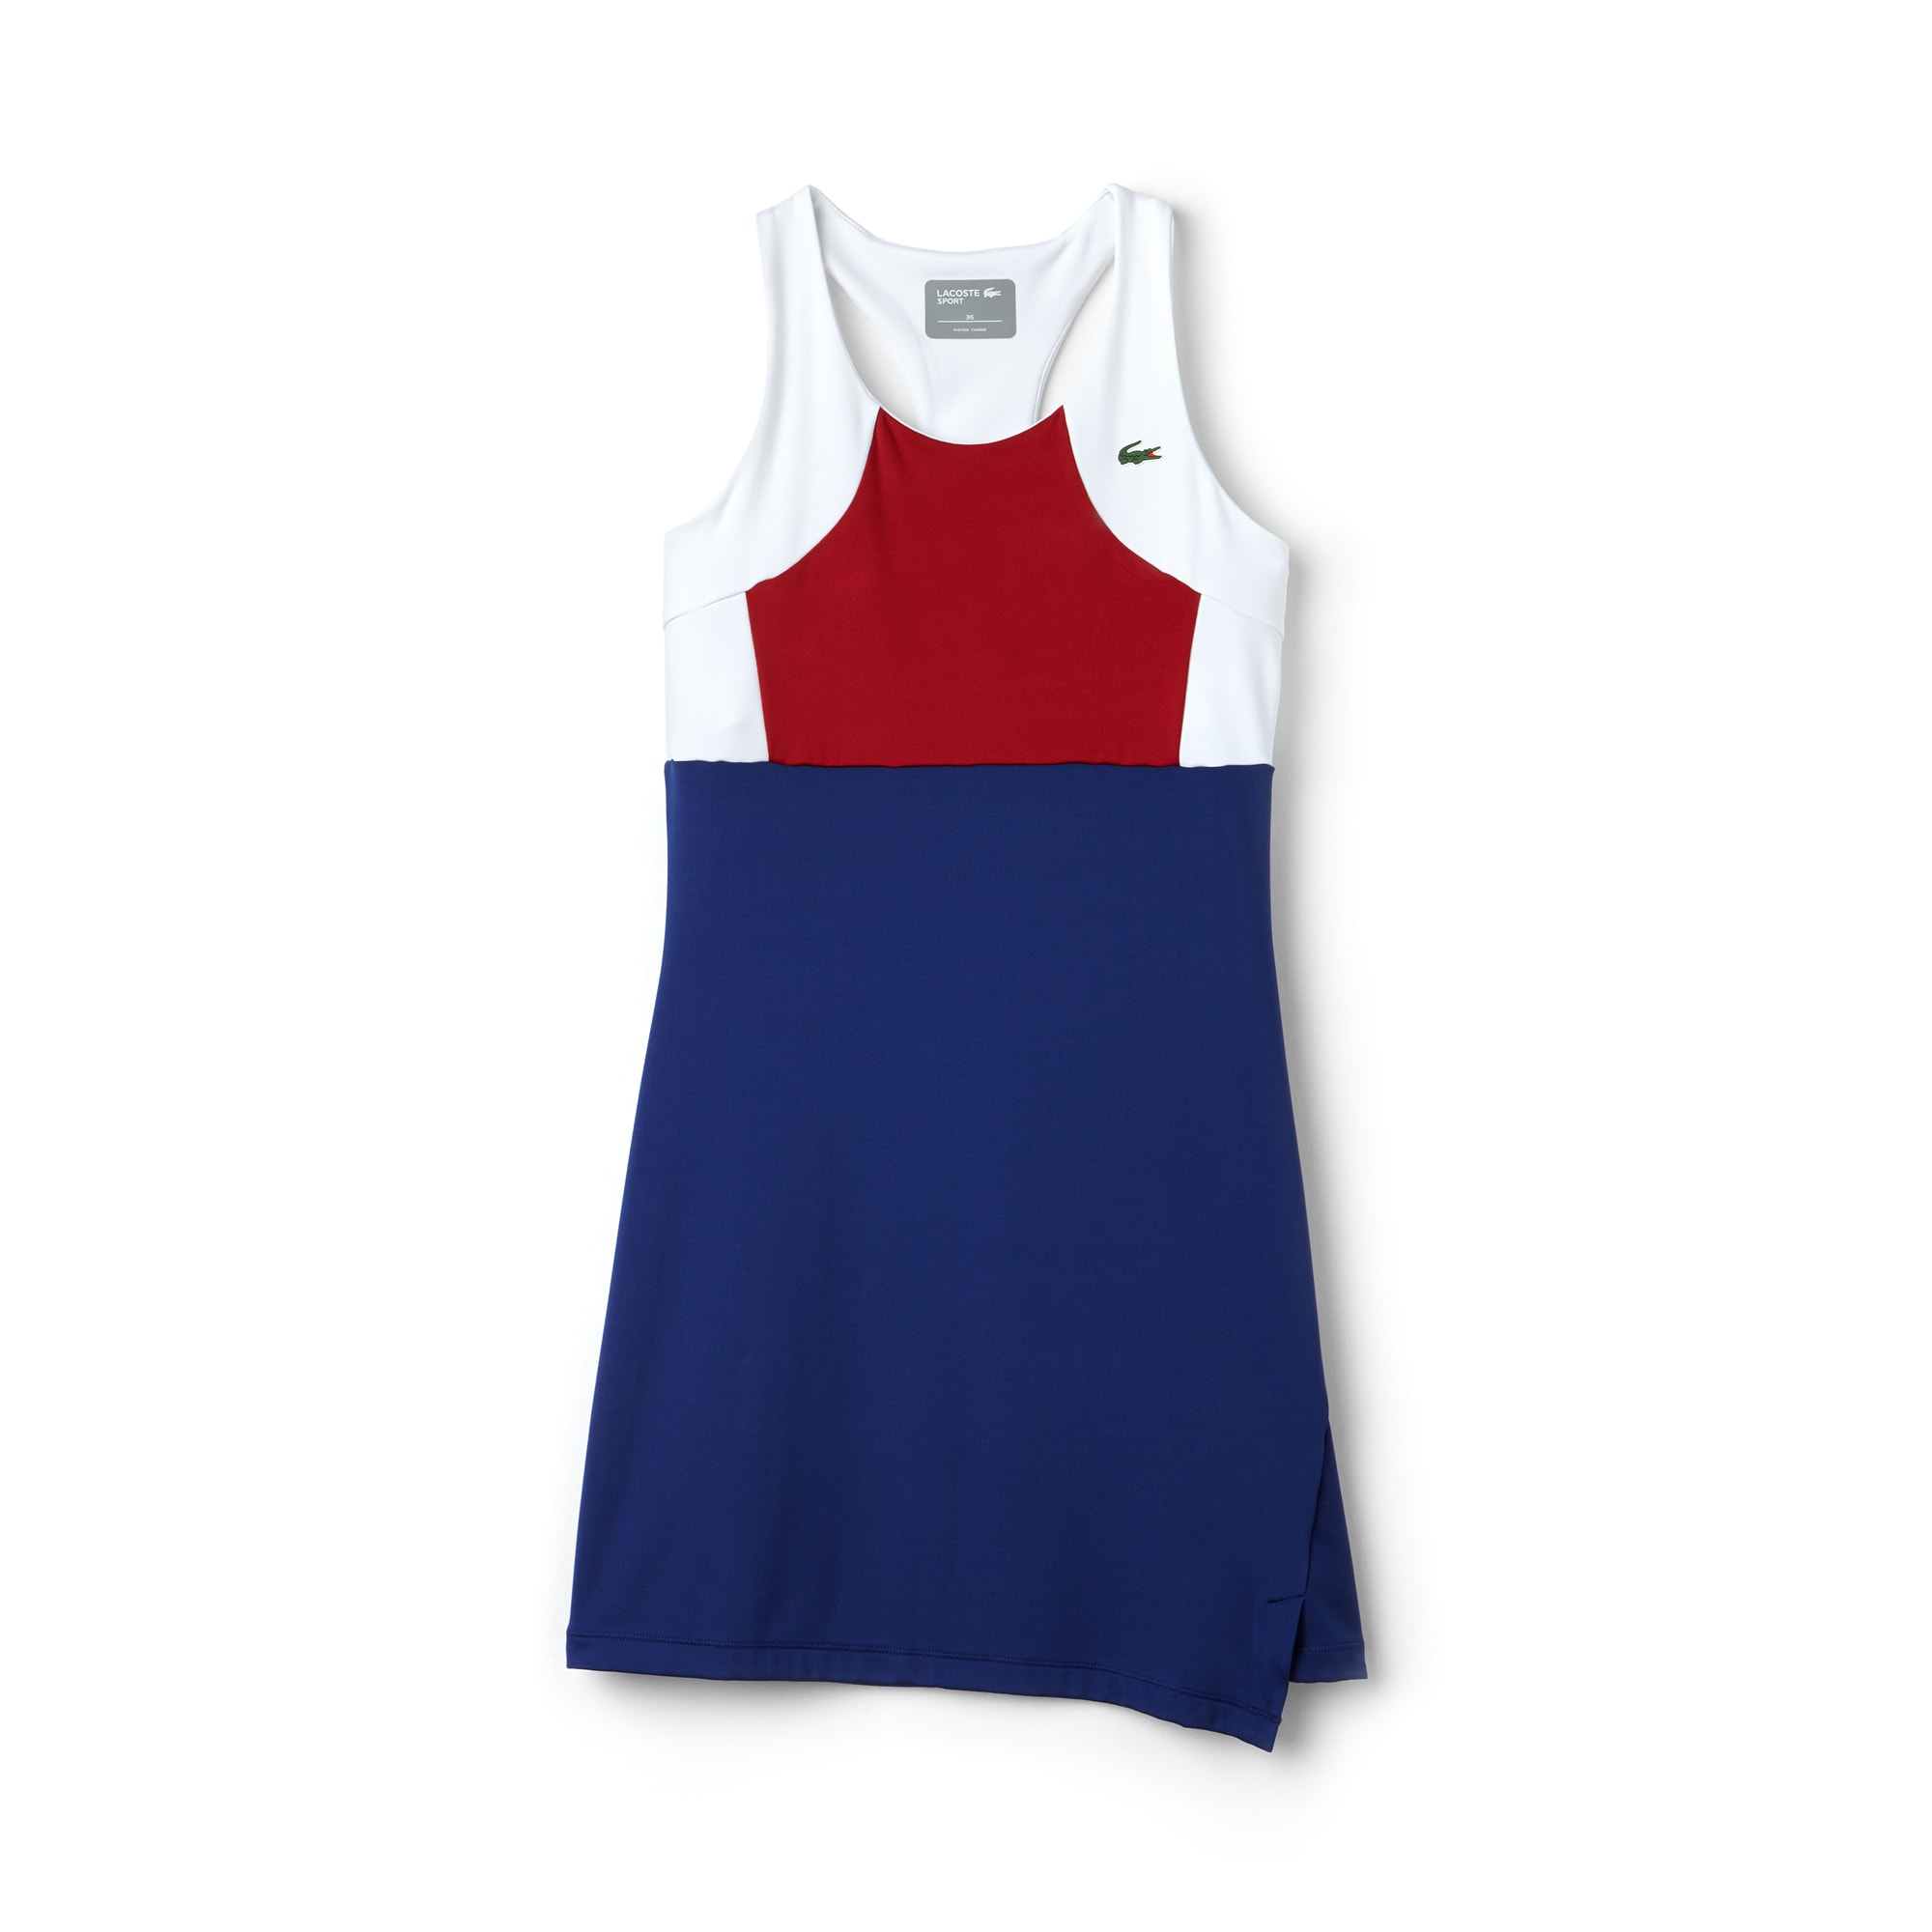 Women's SPORT Tennis Colorblock Jersey Racerback Dress